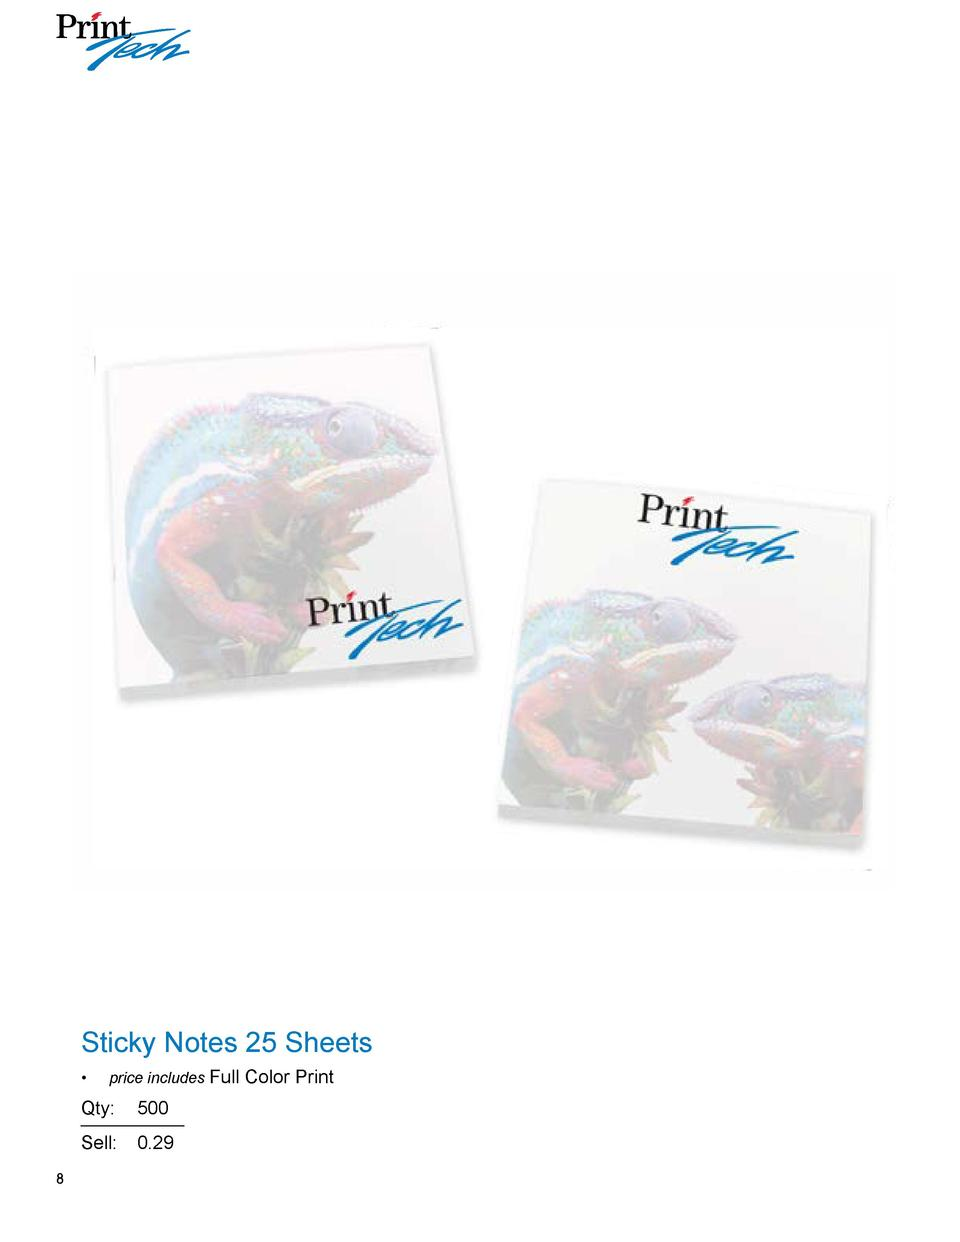 Sticky Notes 25 Sheets       price includes Full  Qty   500 Sell    0.29 8  Color Print